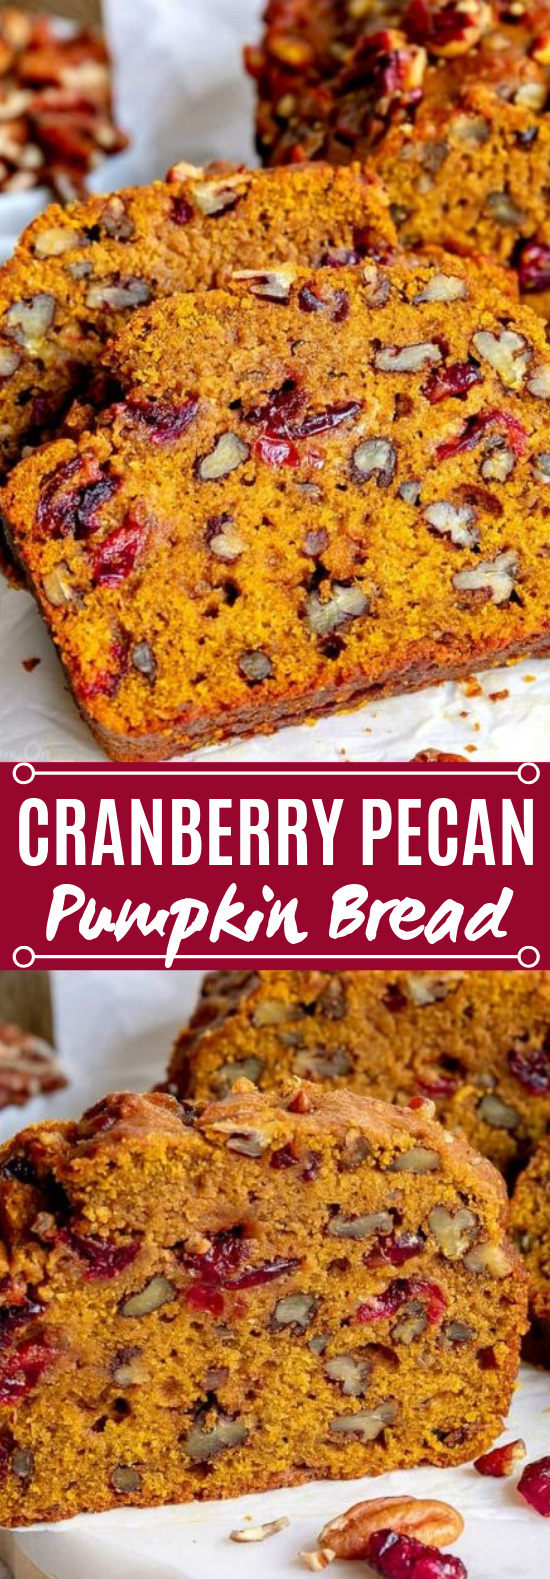 Cranberry Pecan Pumpkin Bread #bread #baking